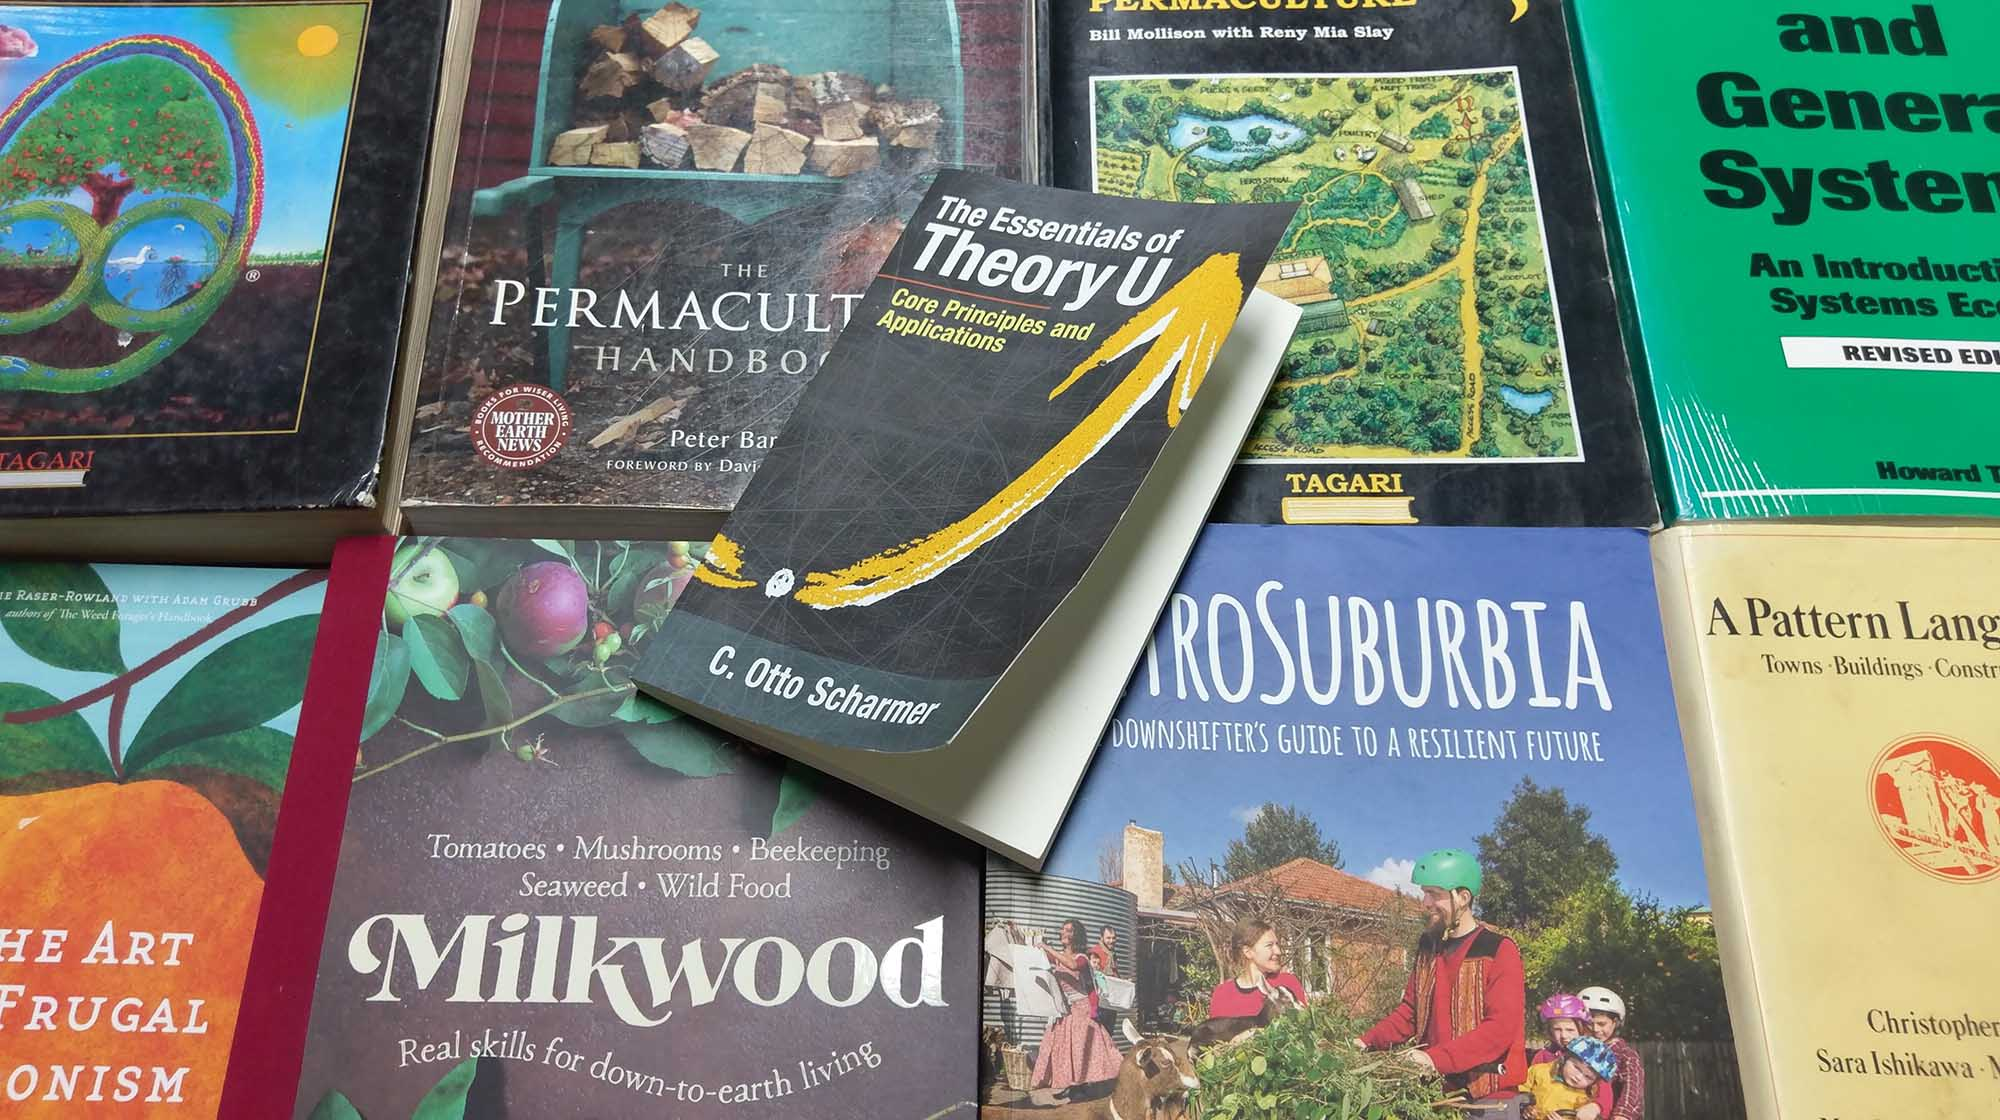 Permaculture courses near bangkok thailand. Permaculture RetroSuburbia Pattern Language and Theory U Course